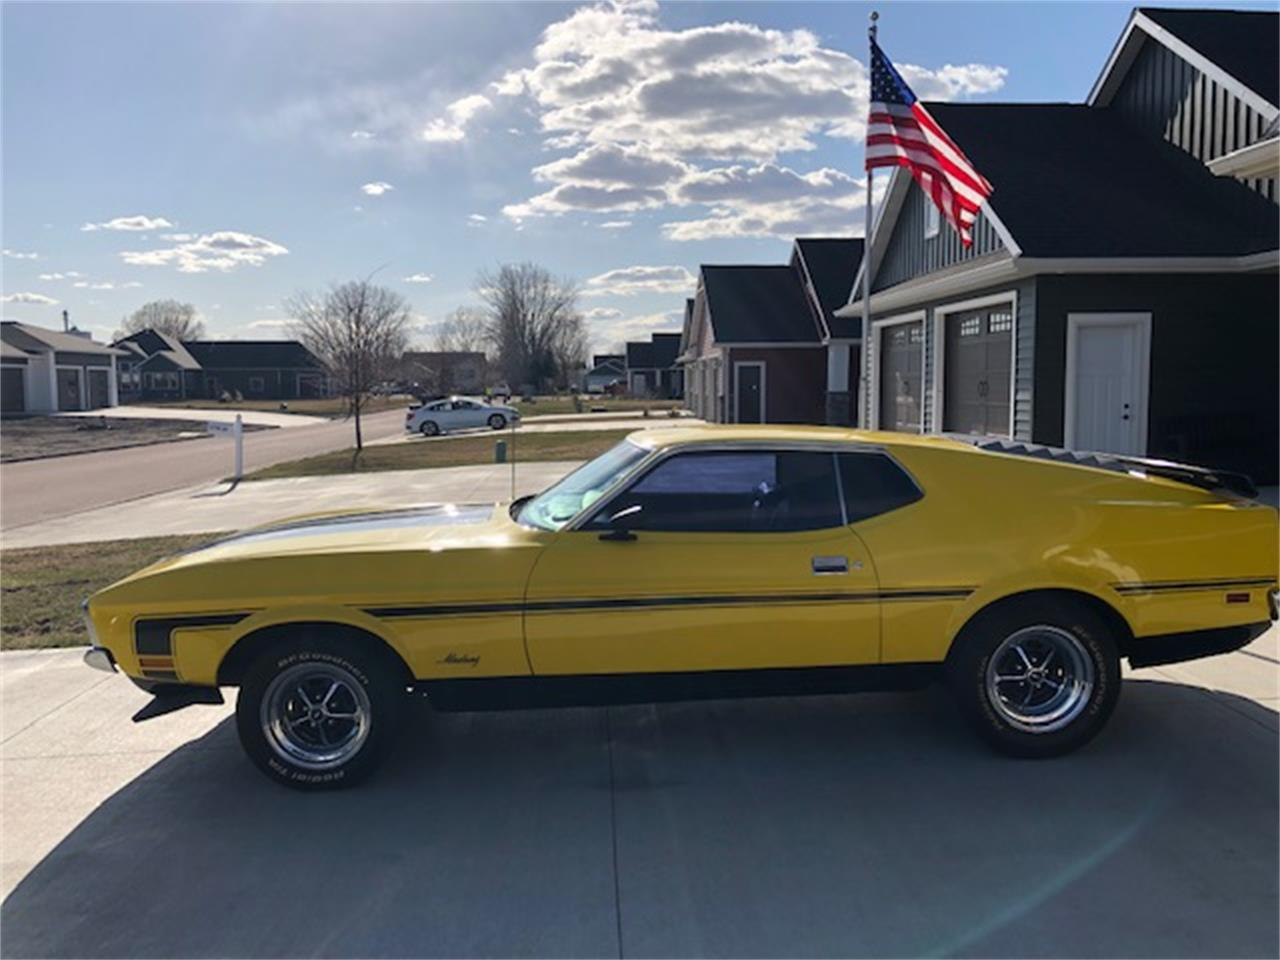 Large Picture of Classic 1971 Ford Mustang Mach 1 located in THOMPSON North Dakota - $28,000.00 - QH5R